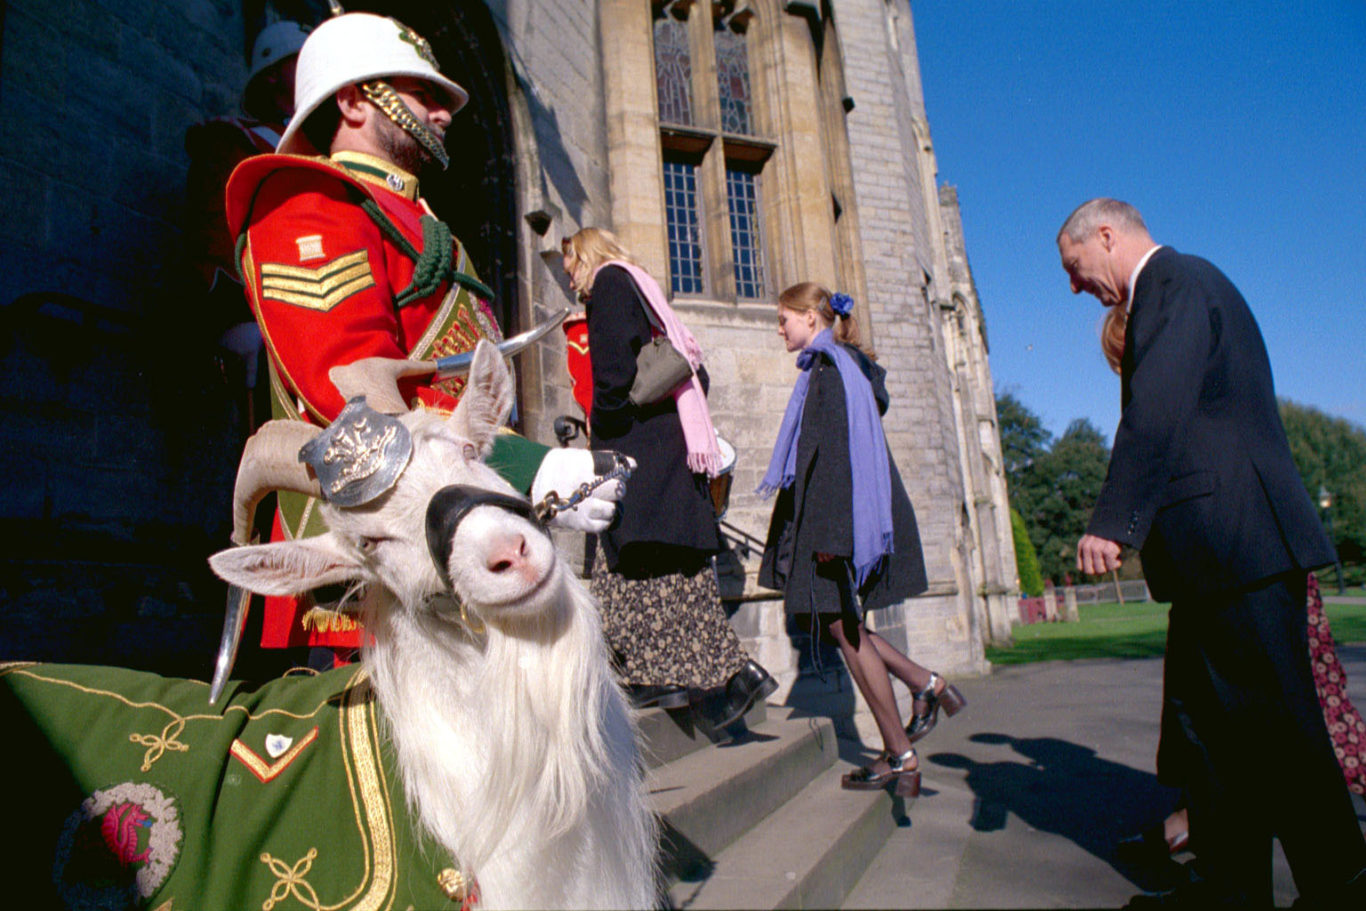 Shenkin the goat stands guard at the entrance to Cardiff Castle in 2000 (Scott Ramsey/PA)